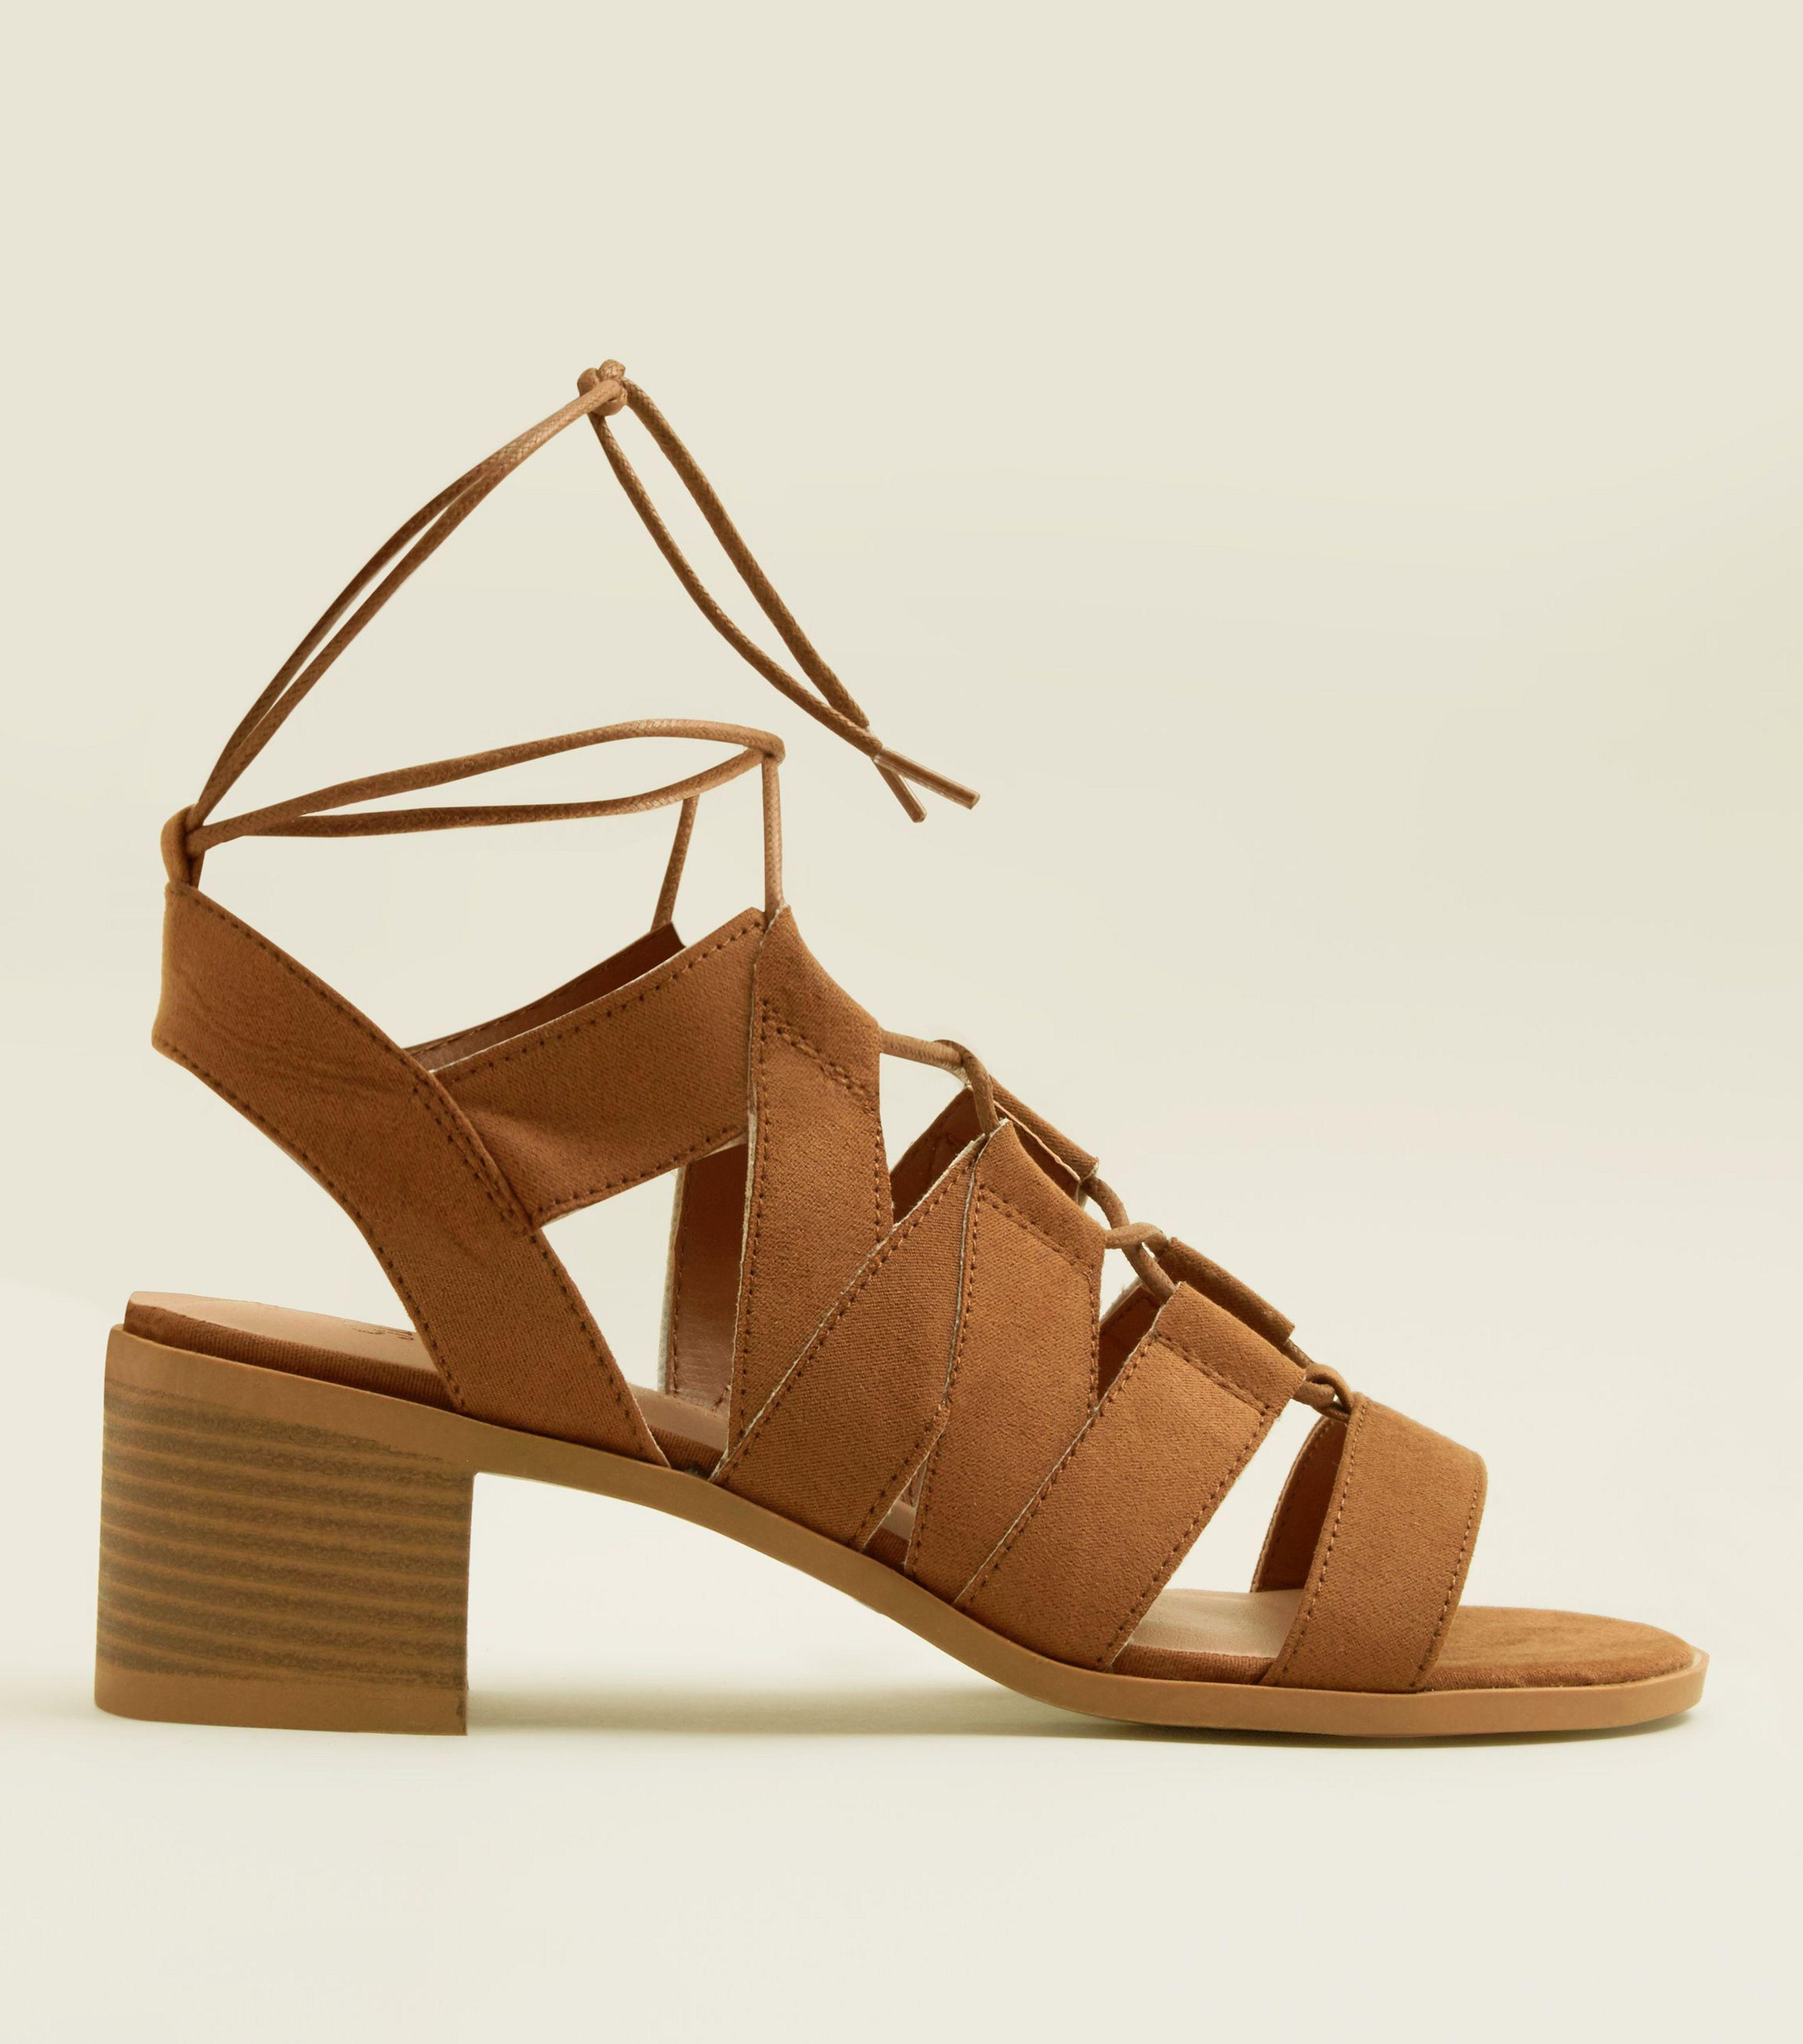 5d3cb6ab29e New Look Girls Tan Suedette Block Heel Gladiator Sandals in Brown - Lyst